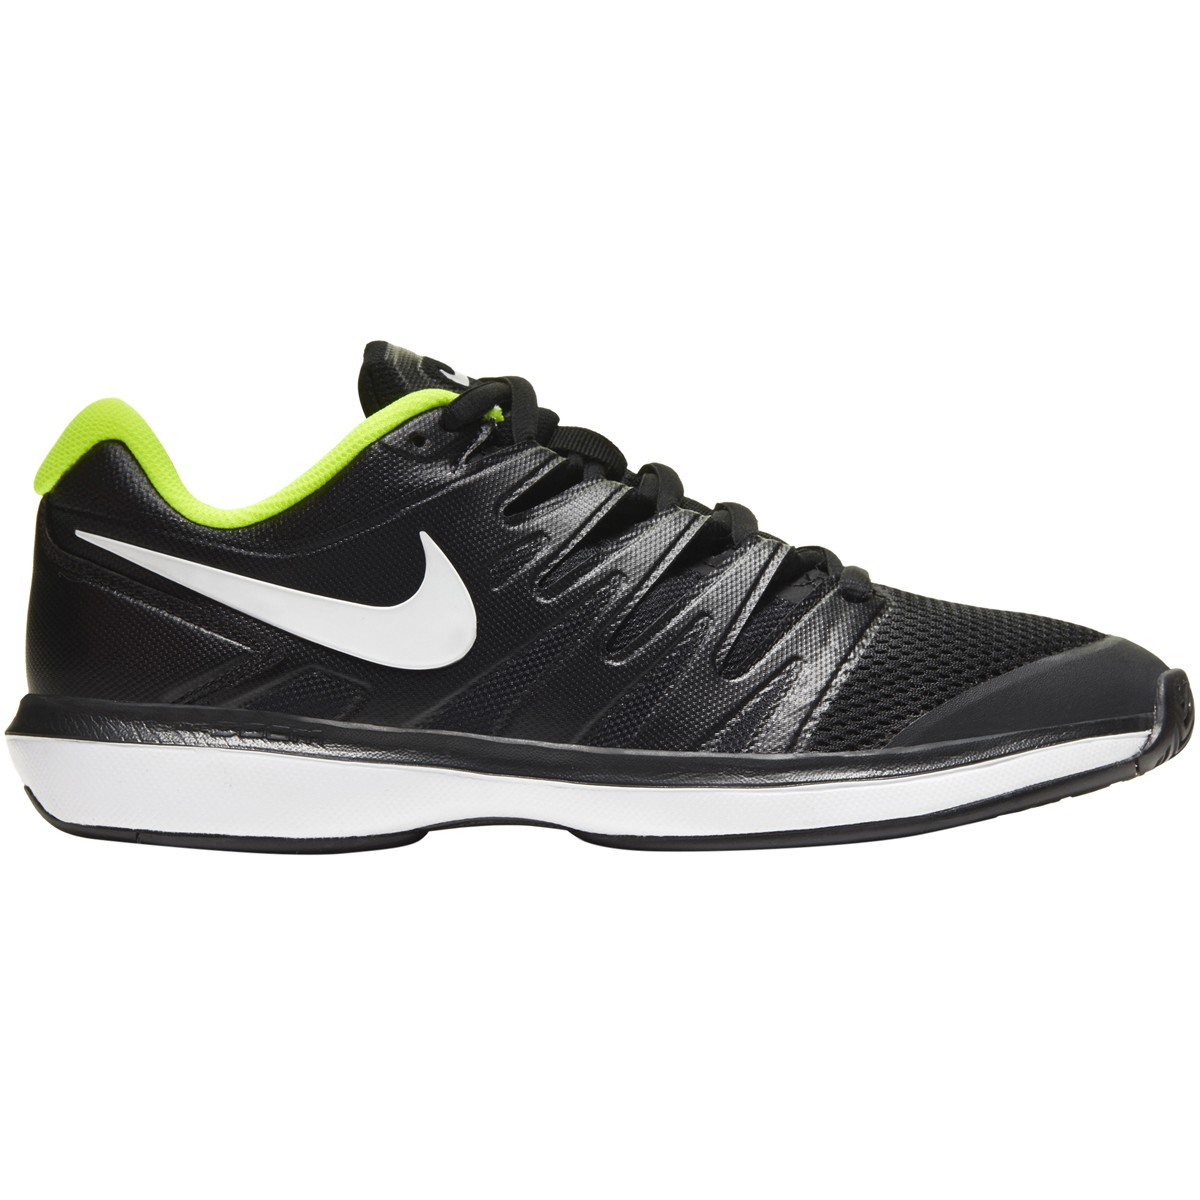 CHAUSSURES NIKE AIR ZOOM PRESTIGE TOUTES SURFACES NIKE